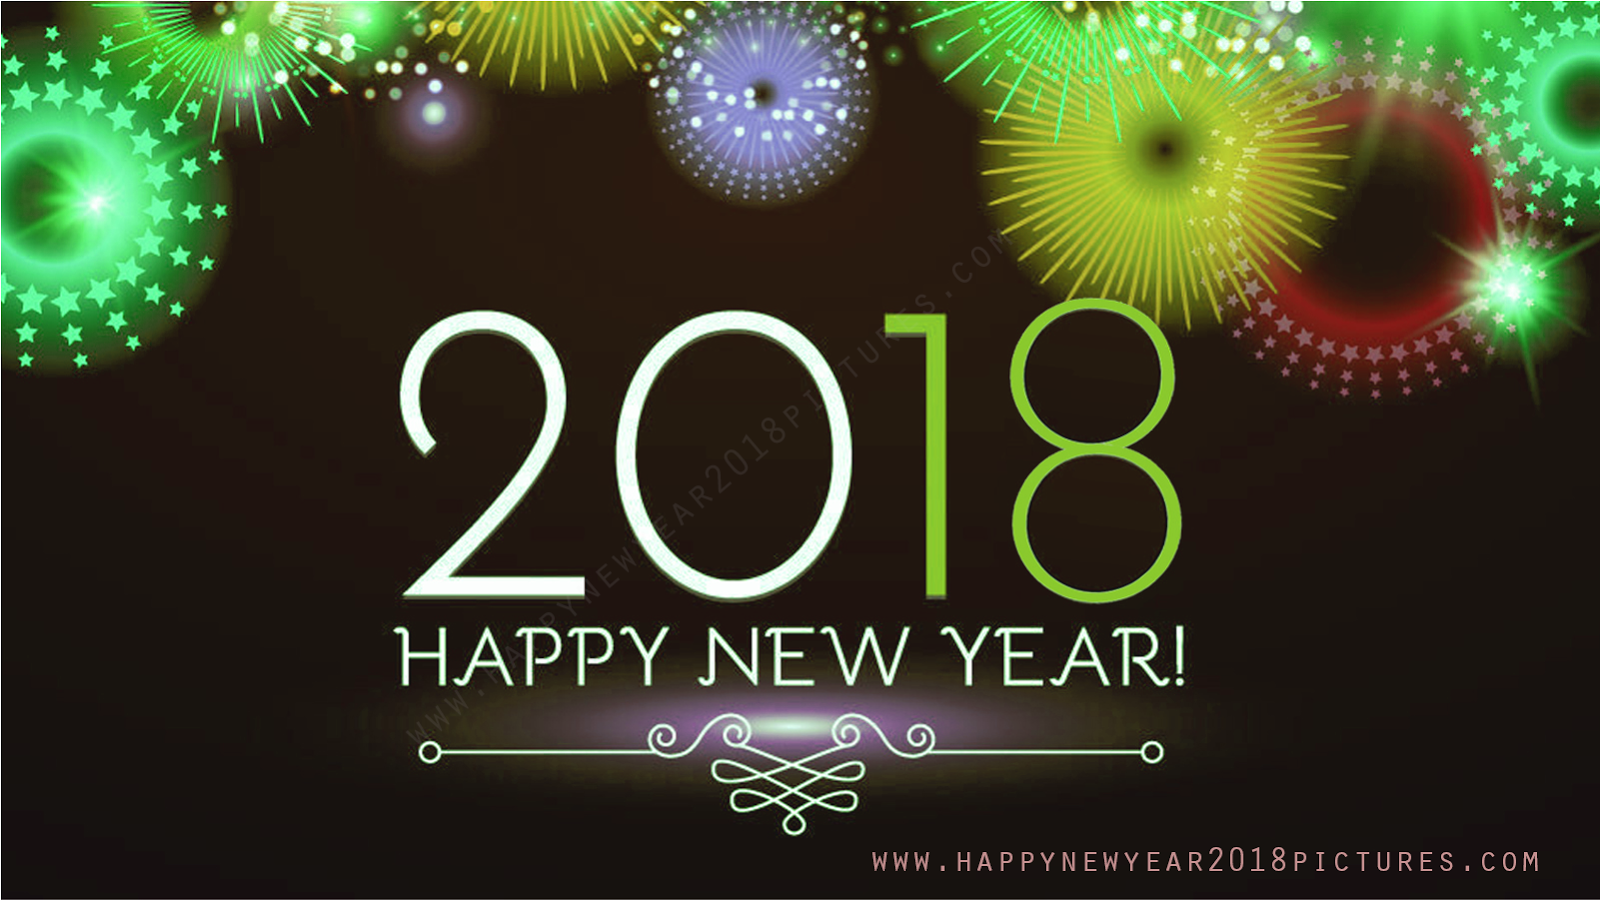 new year whatsapp status greetings messages wishes in spanish png 1600x900 spanish new year messages